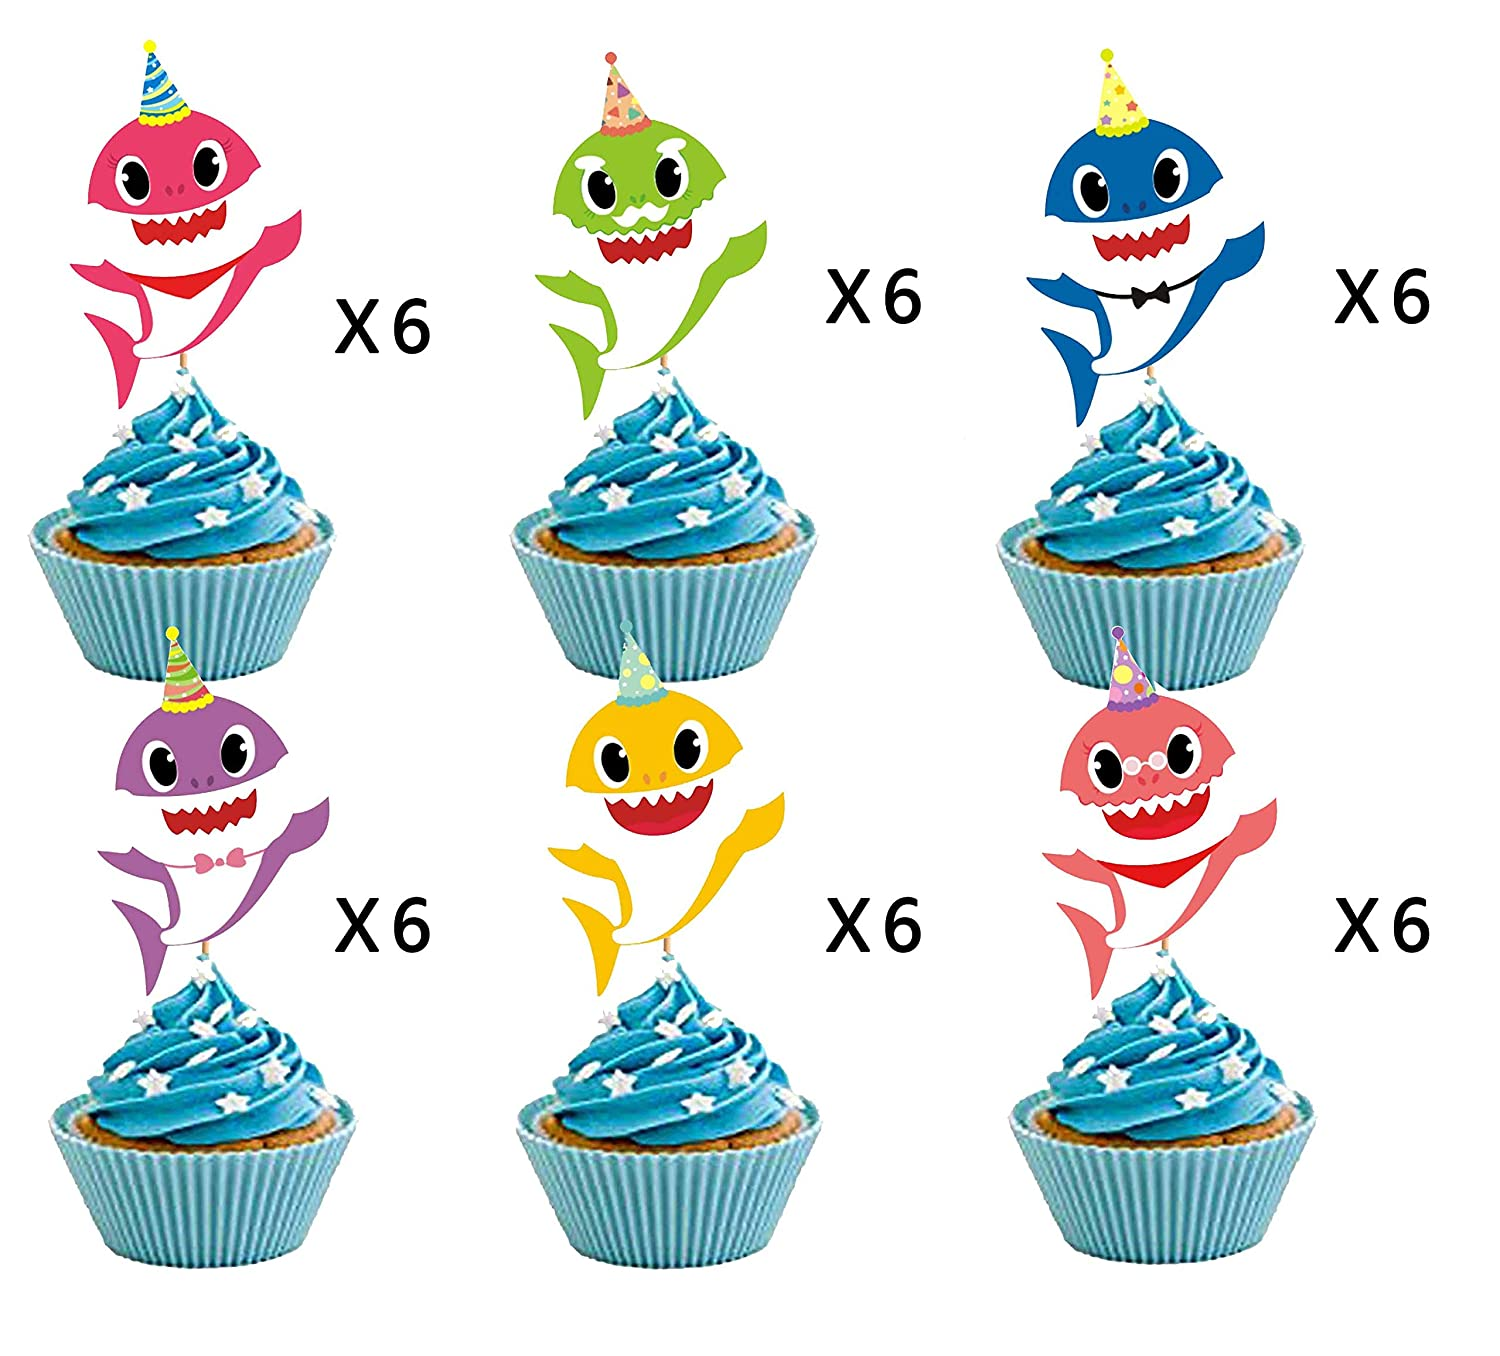 Shark Family Baby Shower Birthday Party Decorations 36 pieces Shark Cupcake Toppers Shark Theme Party Supplies